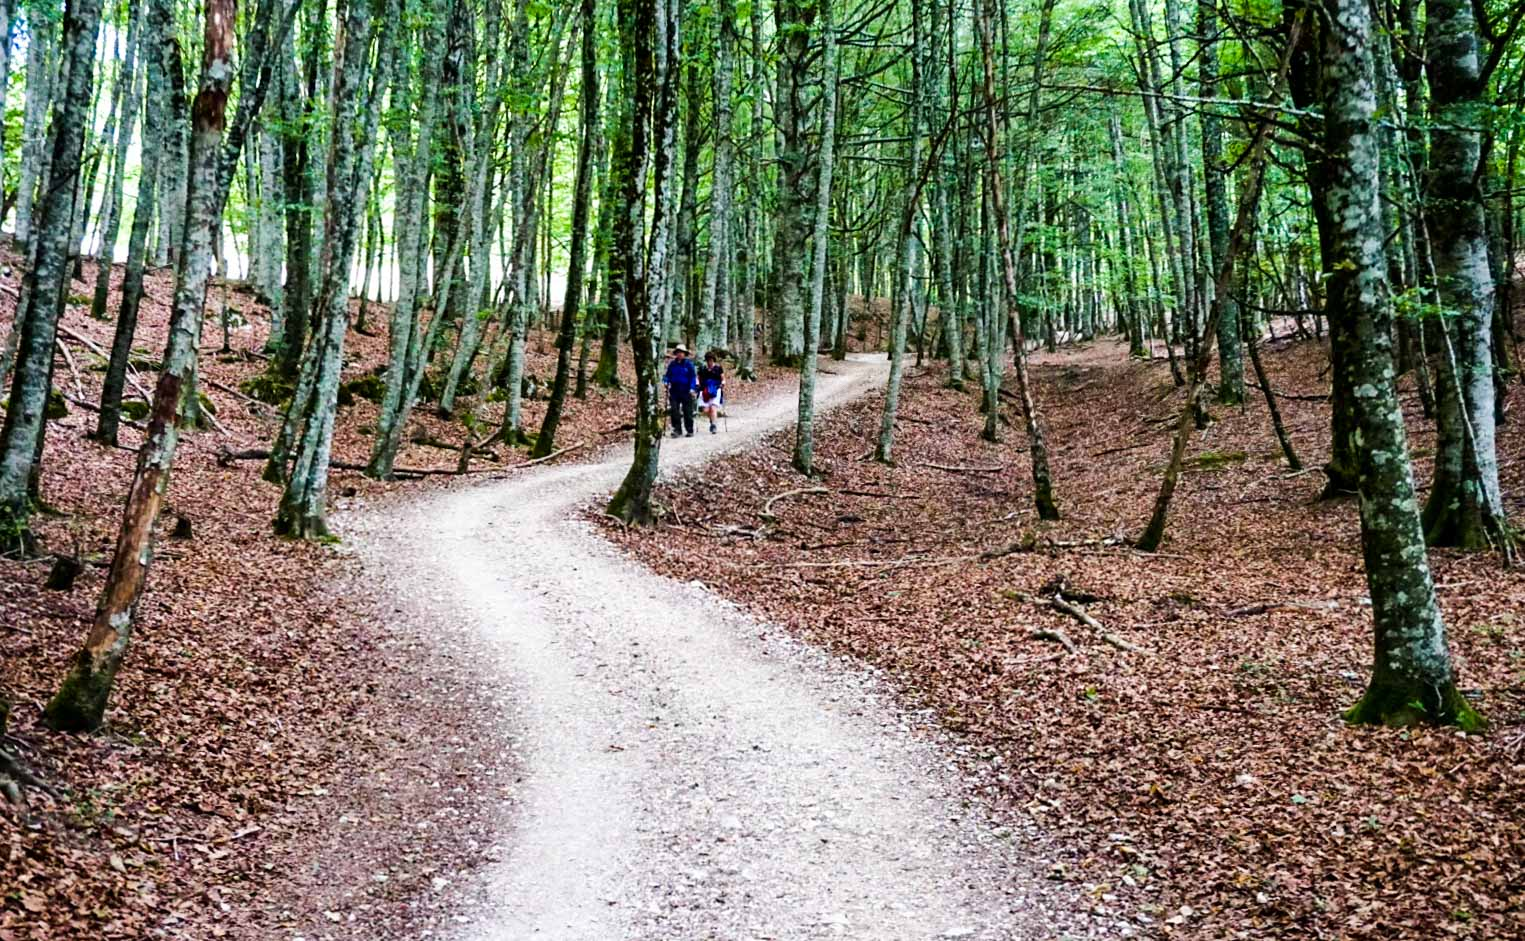 Two people walking through woods along the Camino De Santiago.